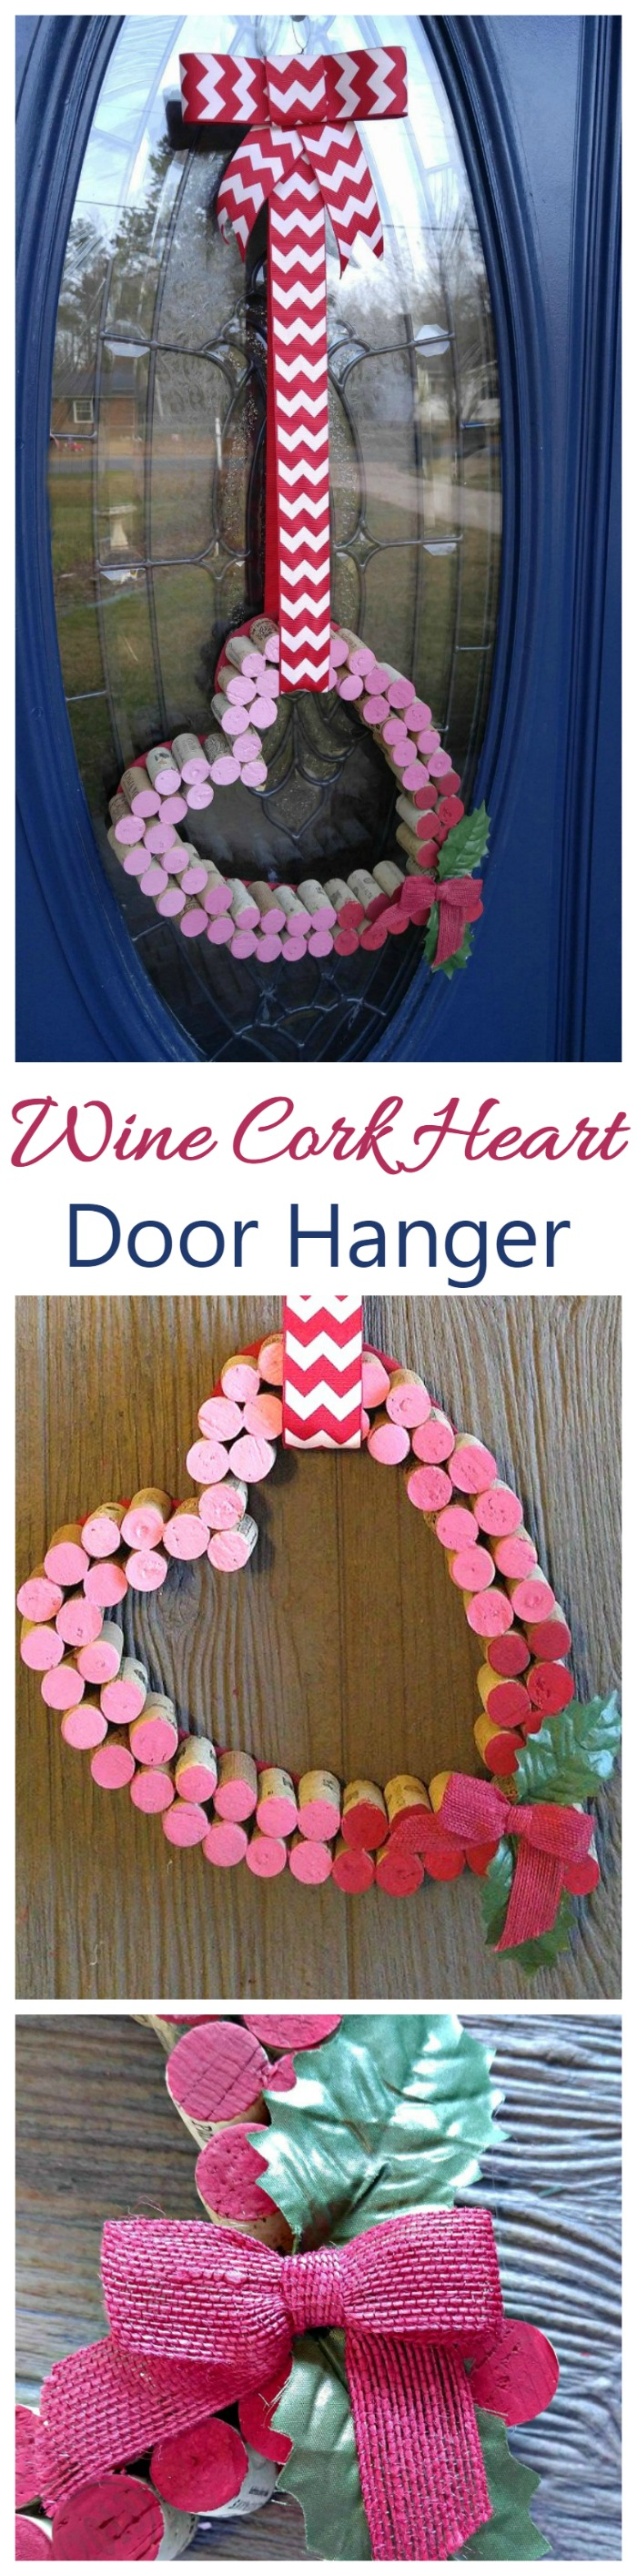 This Wine Cork Heart Door Decoration is perfect for a glass paneled door where a wreath won't work. It adds a romantic Valentine's day greeting to your front door.